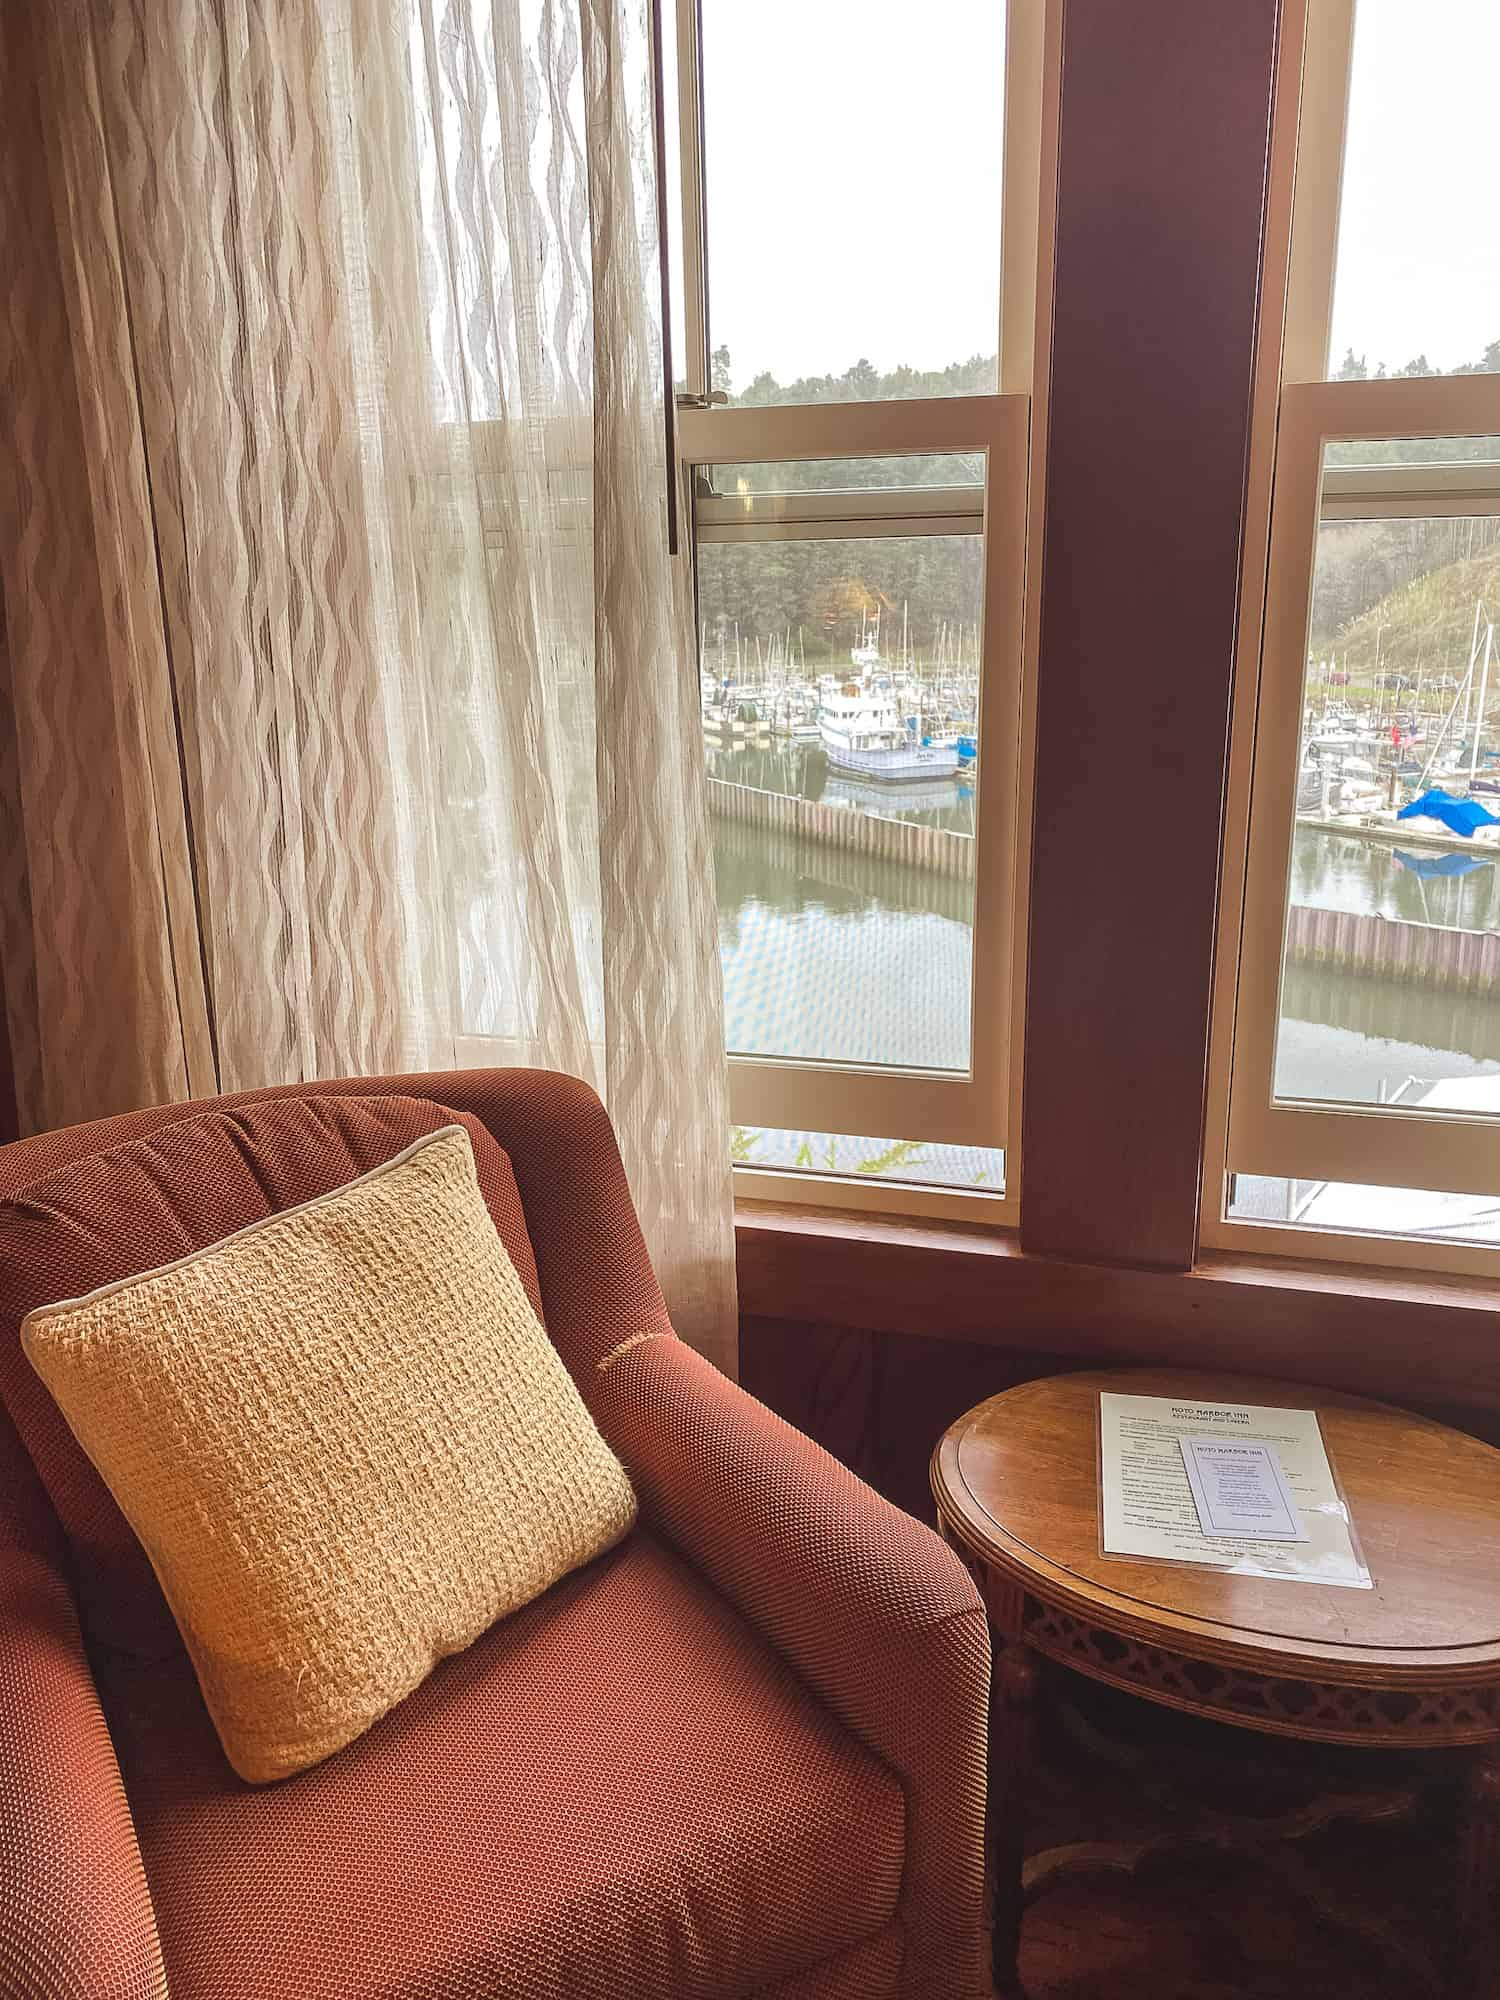 Where to Stay in Fort Bragg - Noyo Harbor Inn